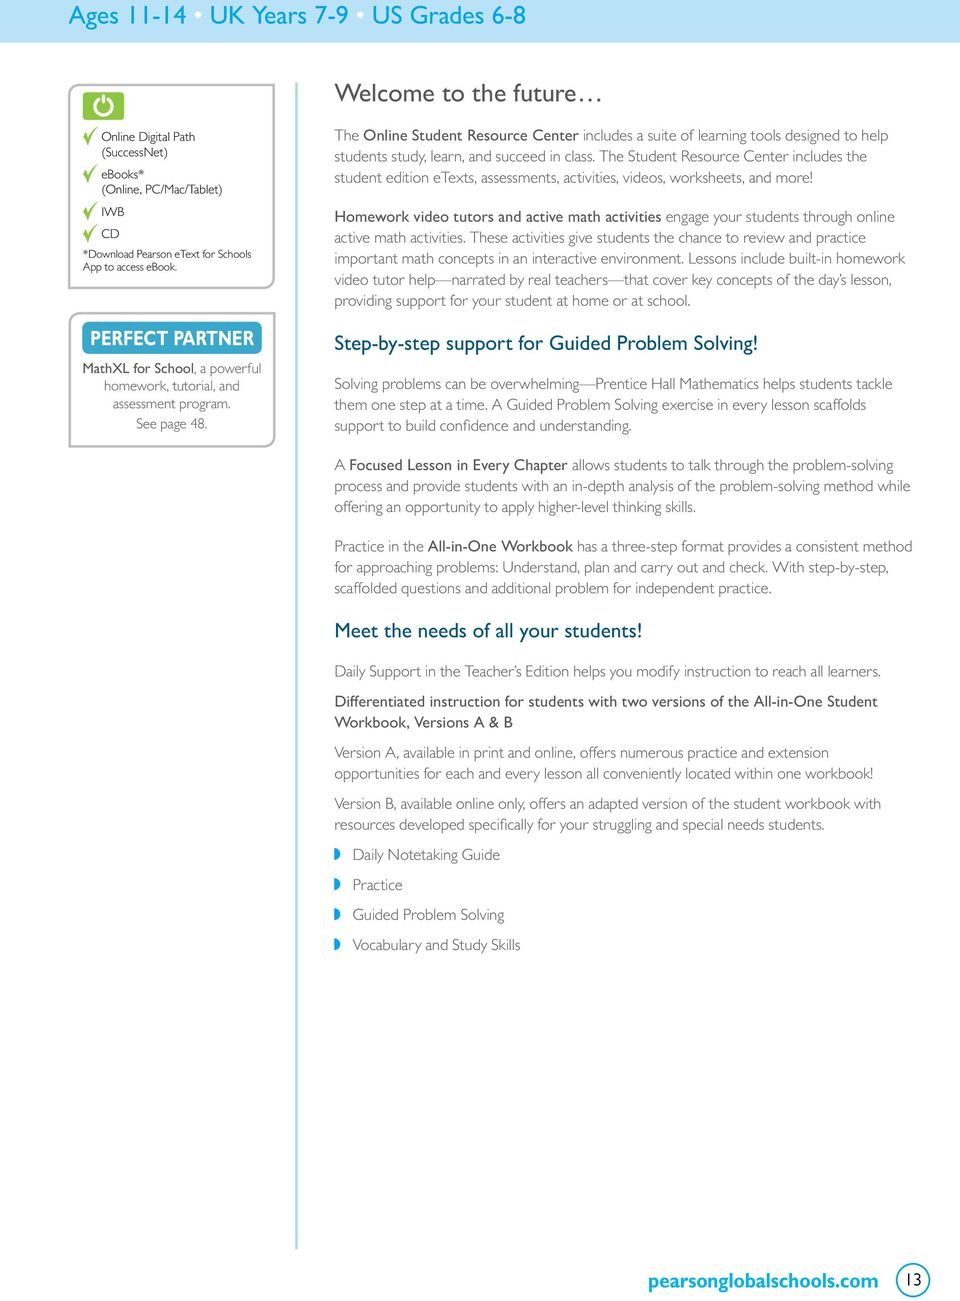 Secondary mathematics pdf the online student resource center includes a suite of learning tools designed to help students study fandeluxe Gallery